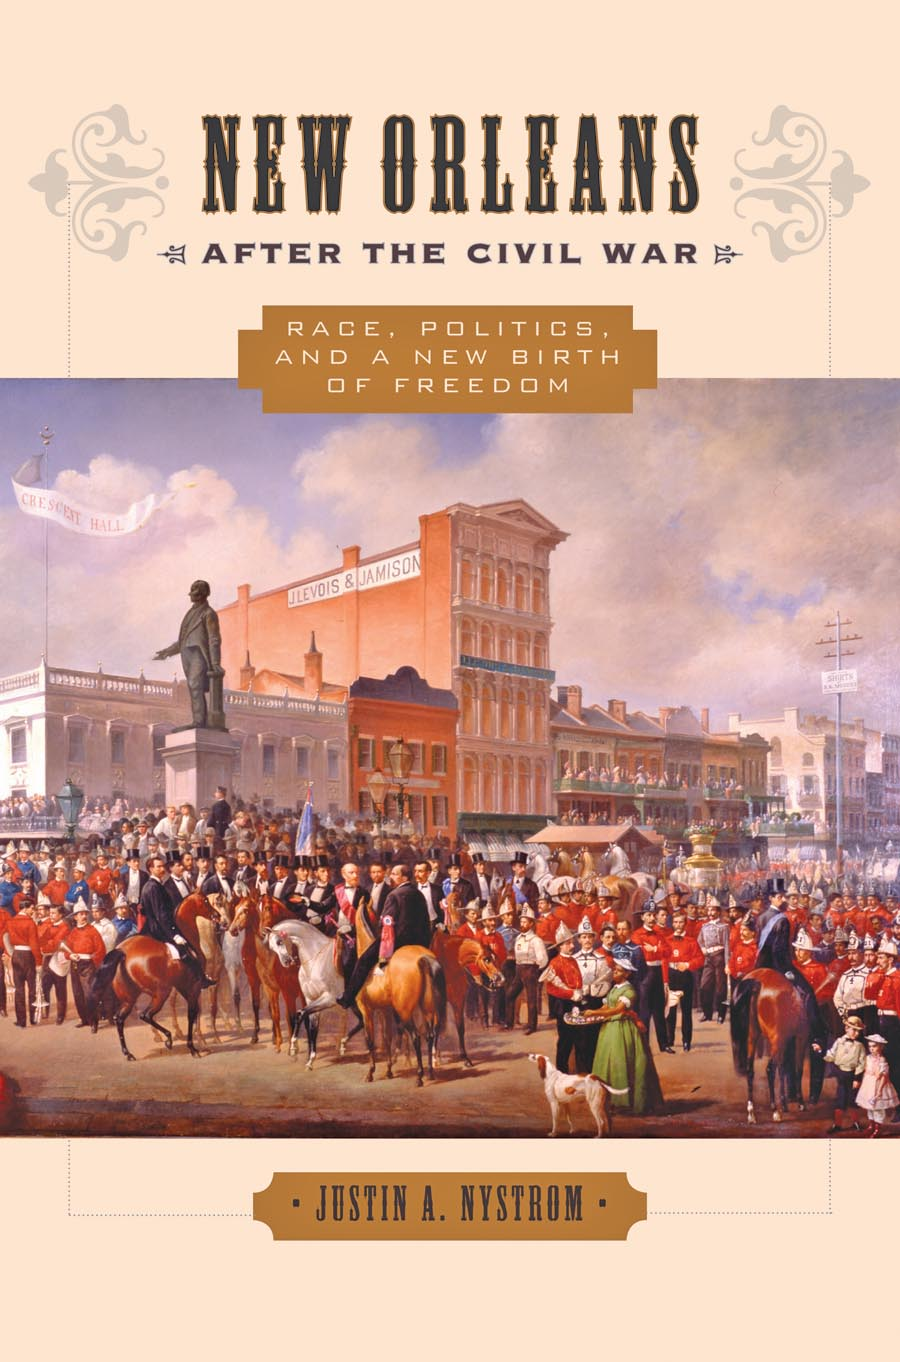 New Orleans after the Civil War – Race, Politics, and a New Birth of Freedom sardor abdullaev mukhudinovich civil war and post war transformation